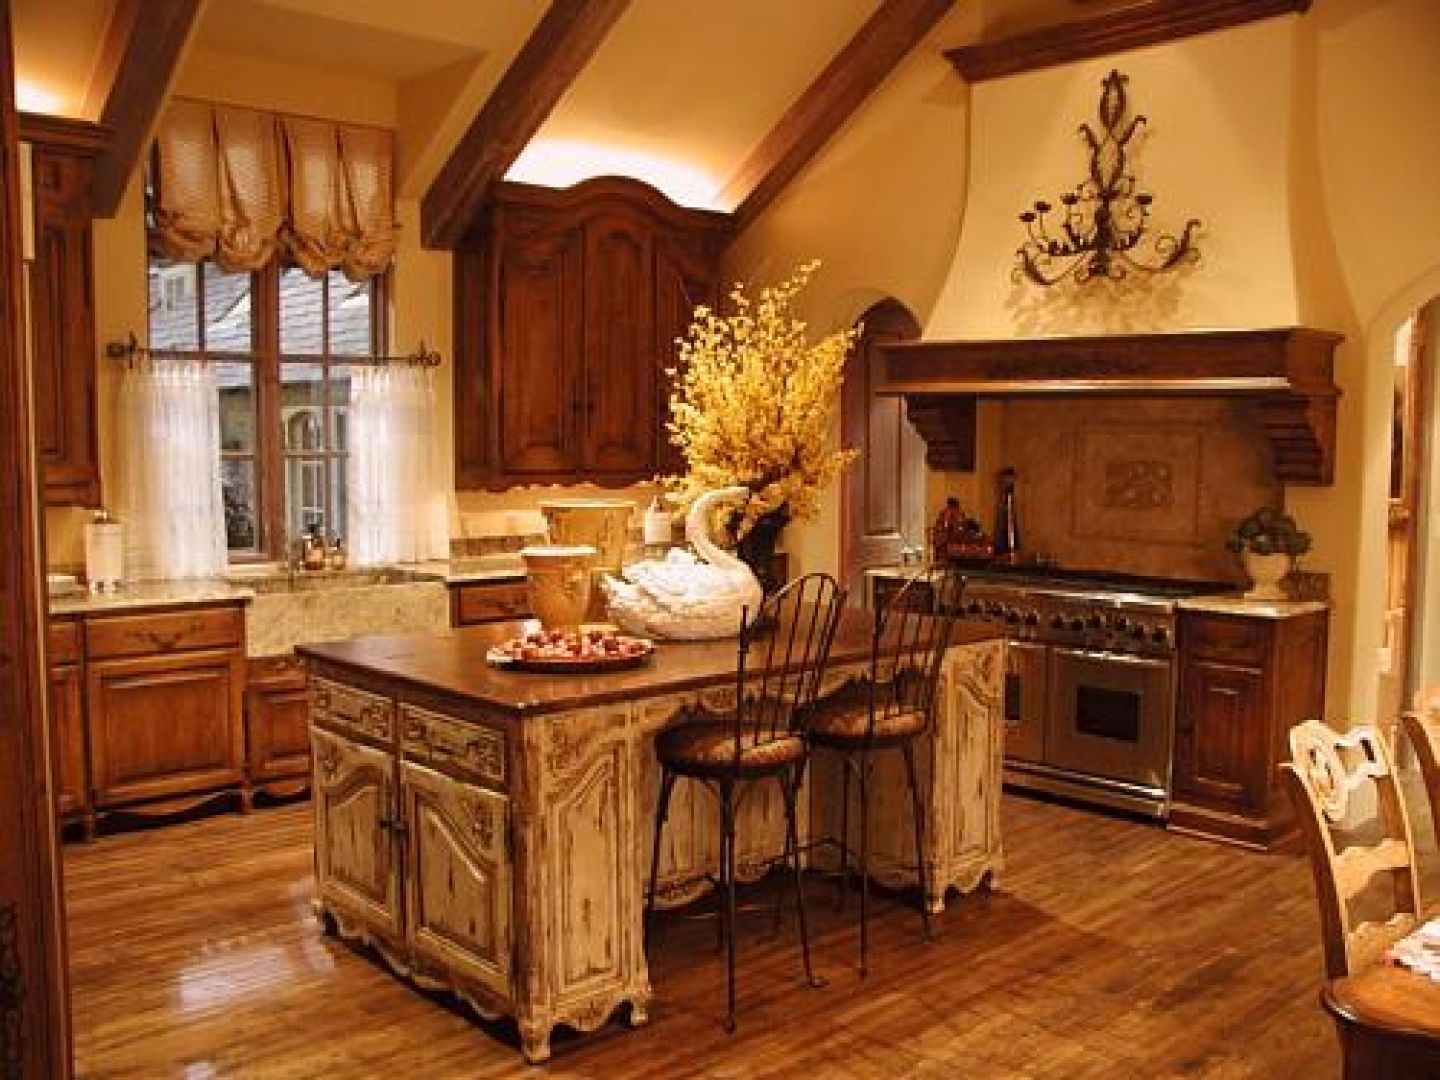 Country Wallpaper Borders First Wallpaper Border Country Wallpaper Borders French Country Decorating Kitchen French Country Kitchens Country Kitchen Designs